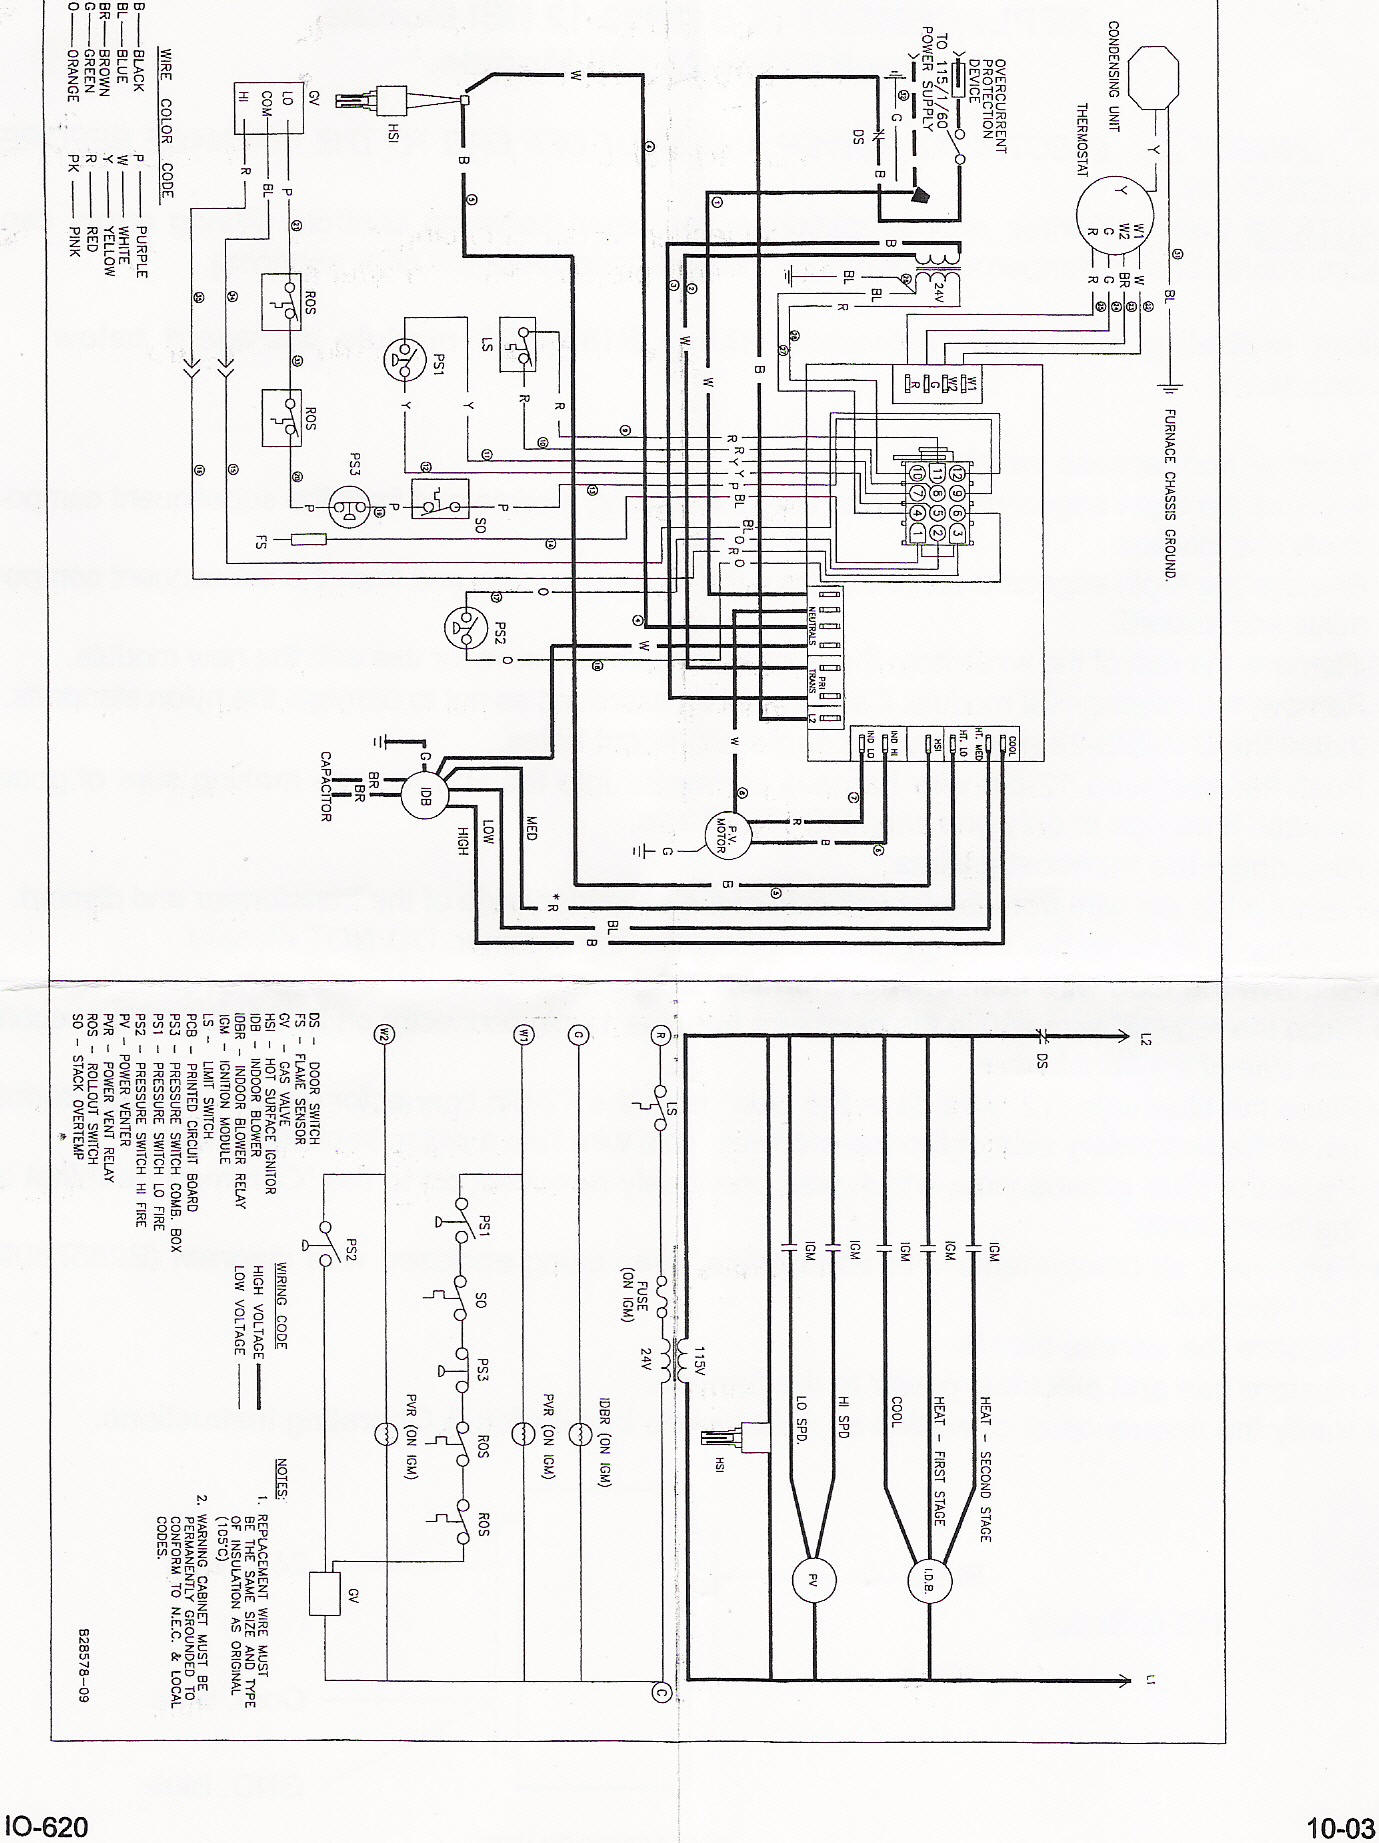 heat pump wiring diagram goodman 2001 saturn sl stereo carrier furnace circuit control board get